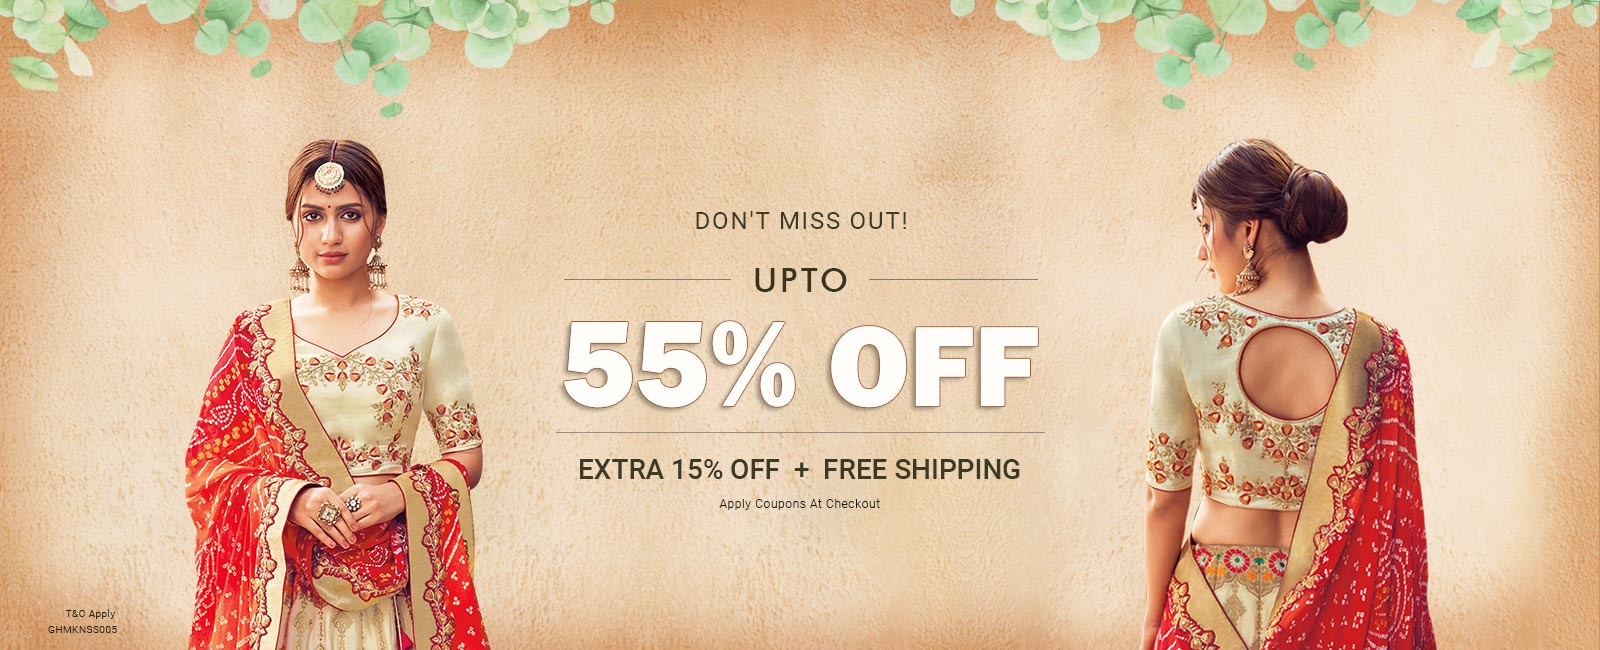 Upto 55% off + Extra 15% off + Free shipping